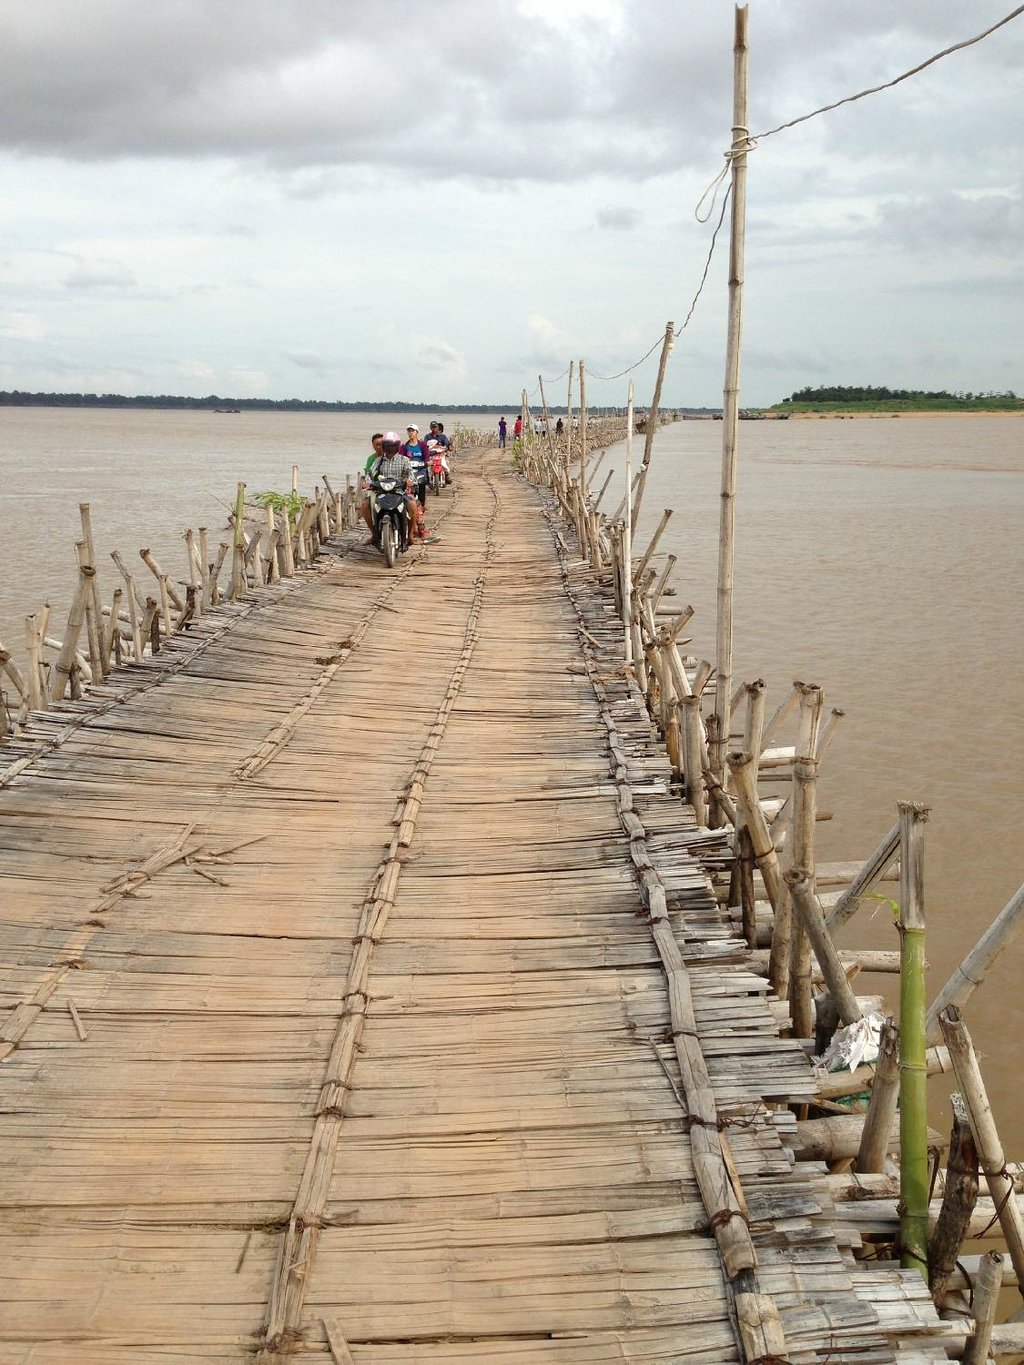 The 10 Best Things to Do in Kampong Cham, Cambodia